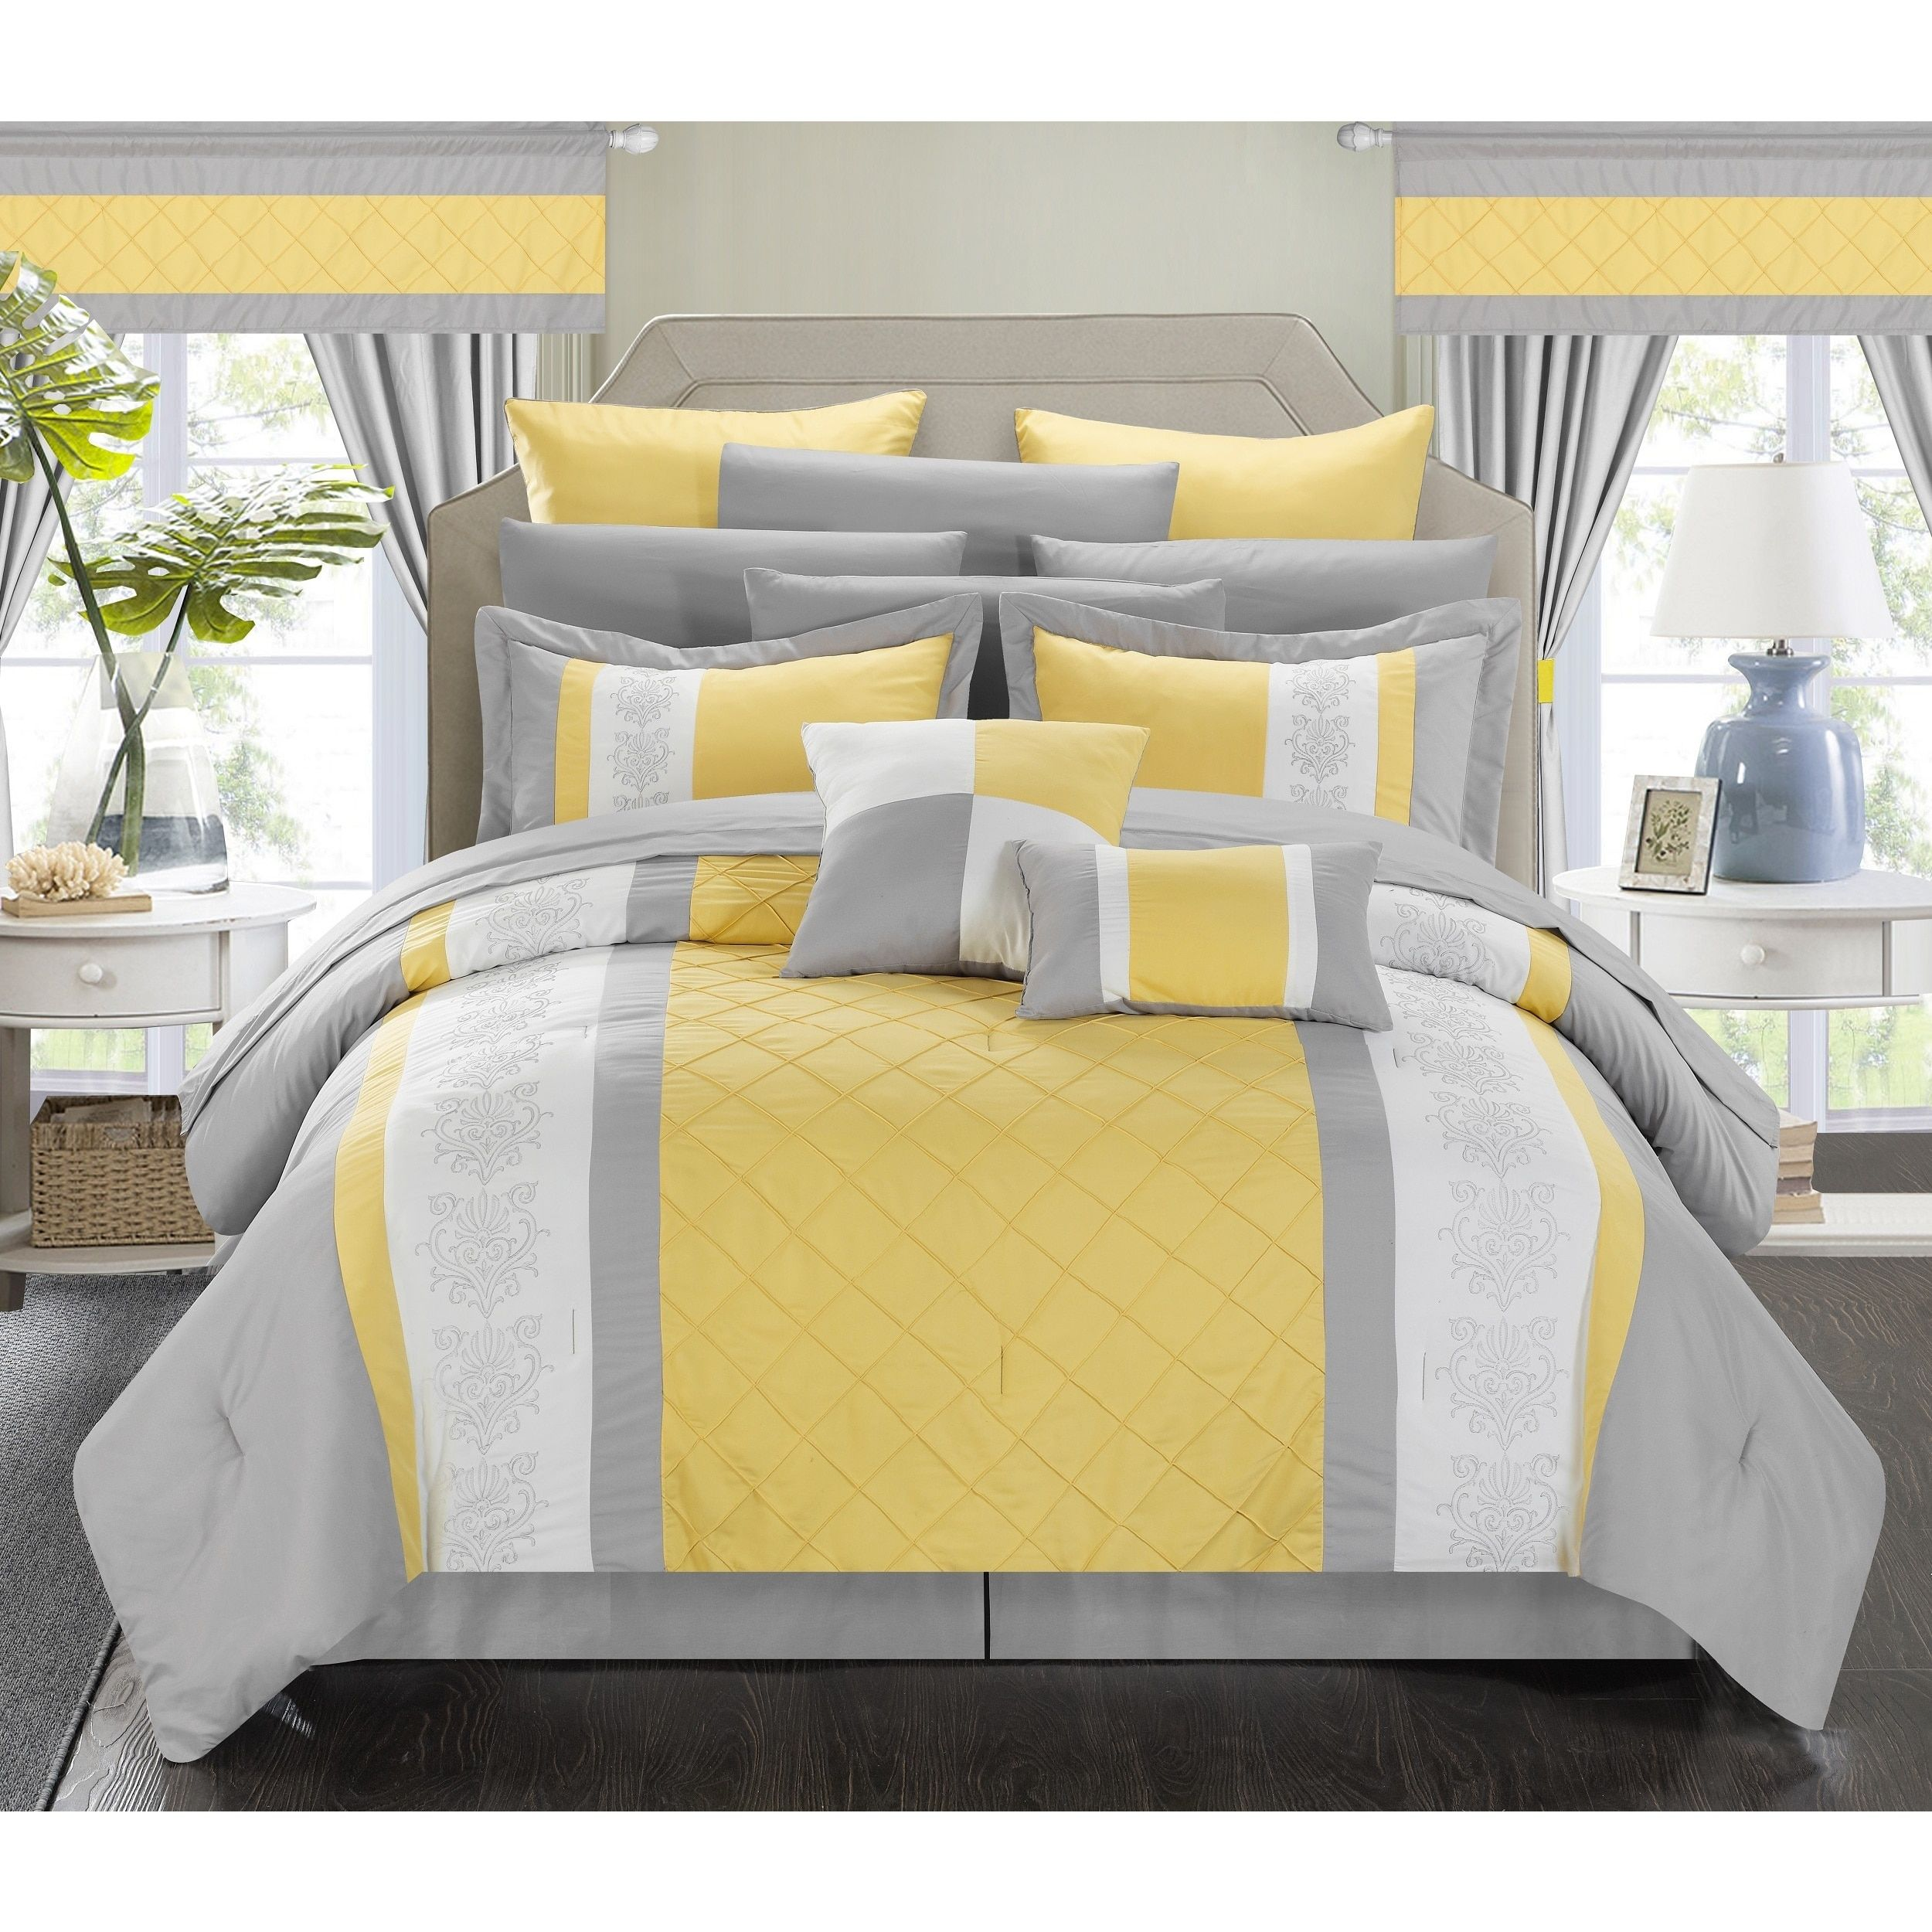 Oliver & James Marclay Yellow 24-piece Bed in a Bag Set ...